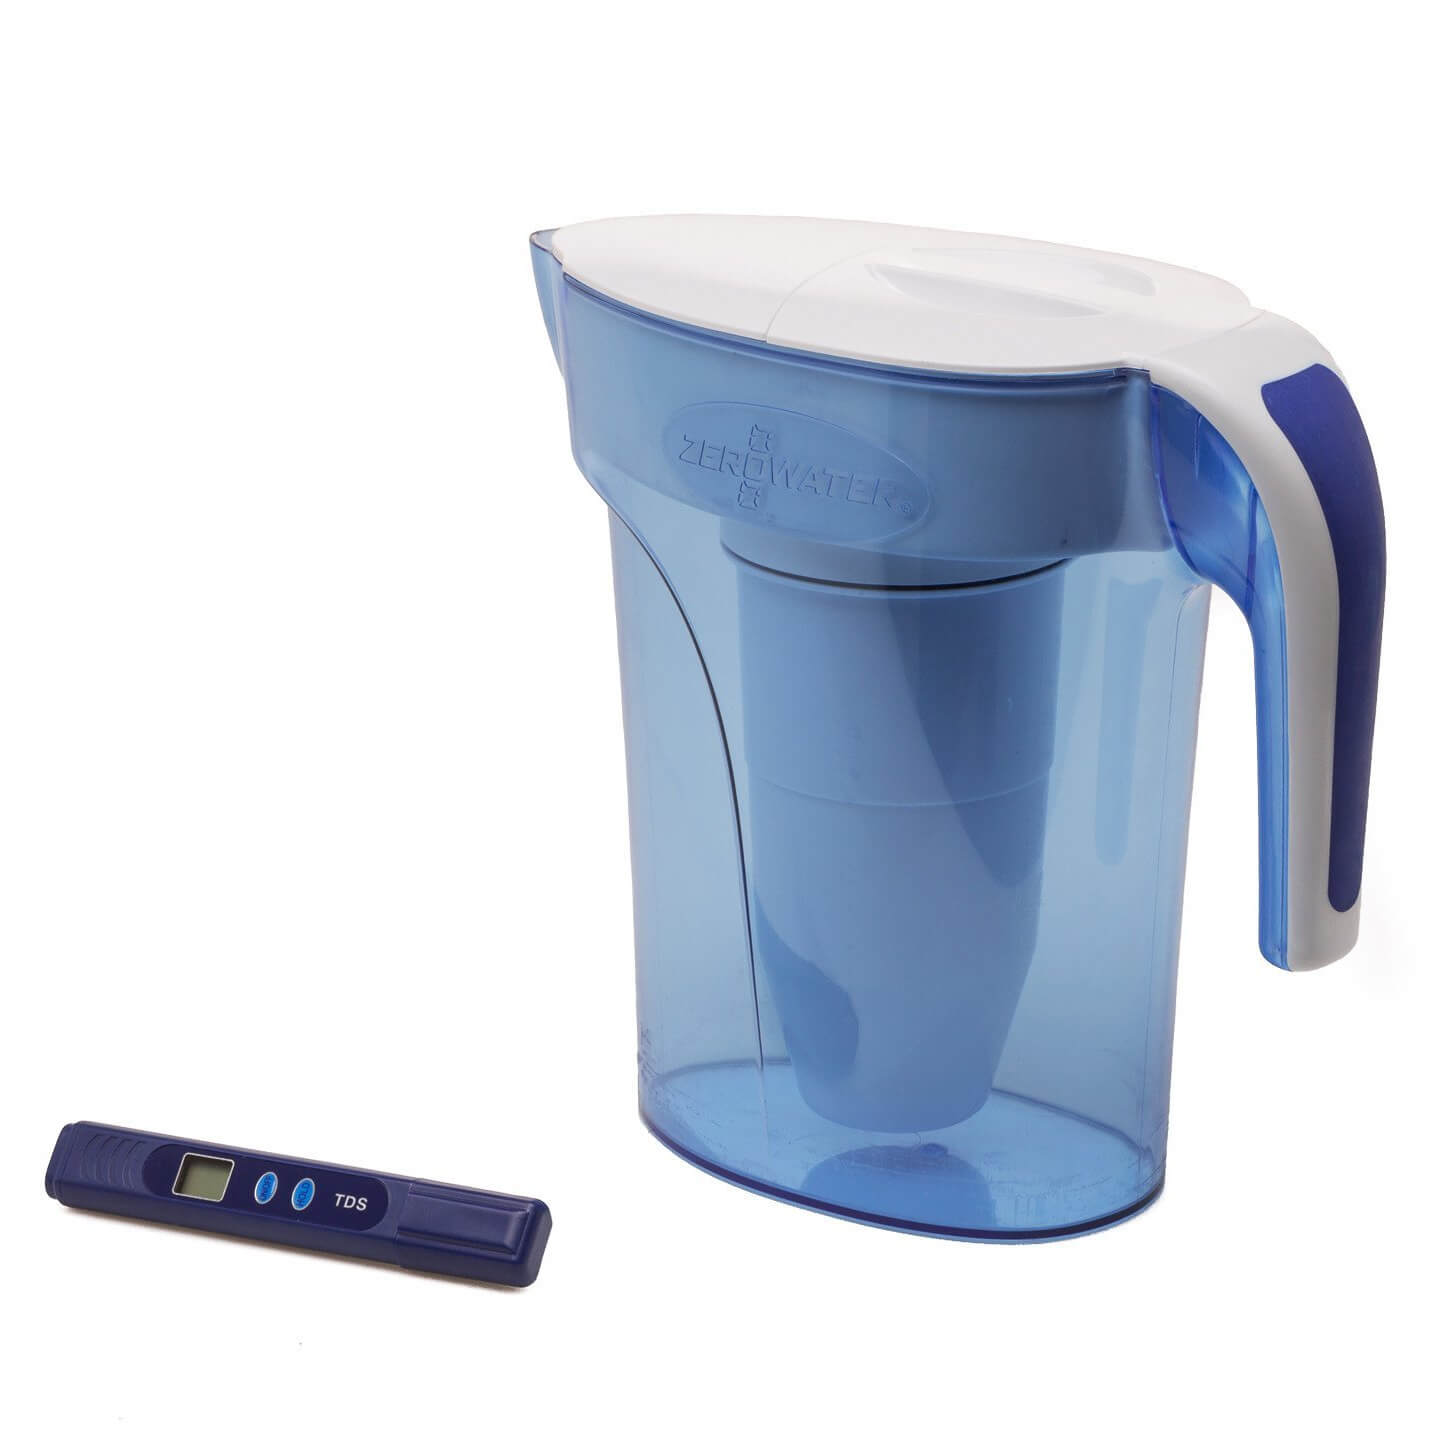 ZeroWater 7-Cup Ready Pour Pitcher - 1.66L - Blue/White